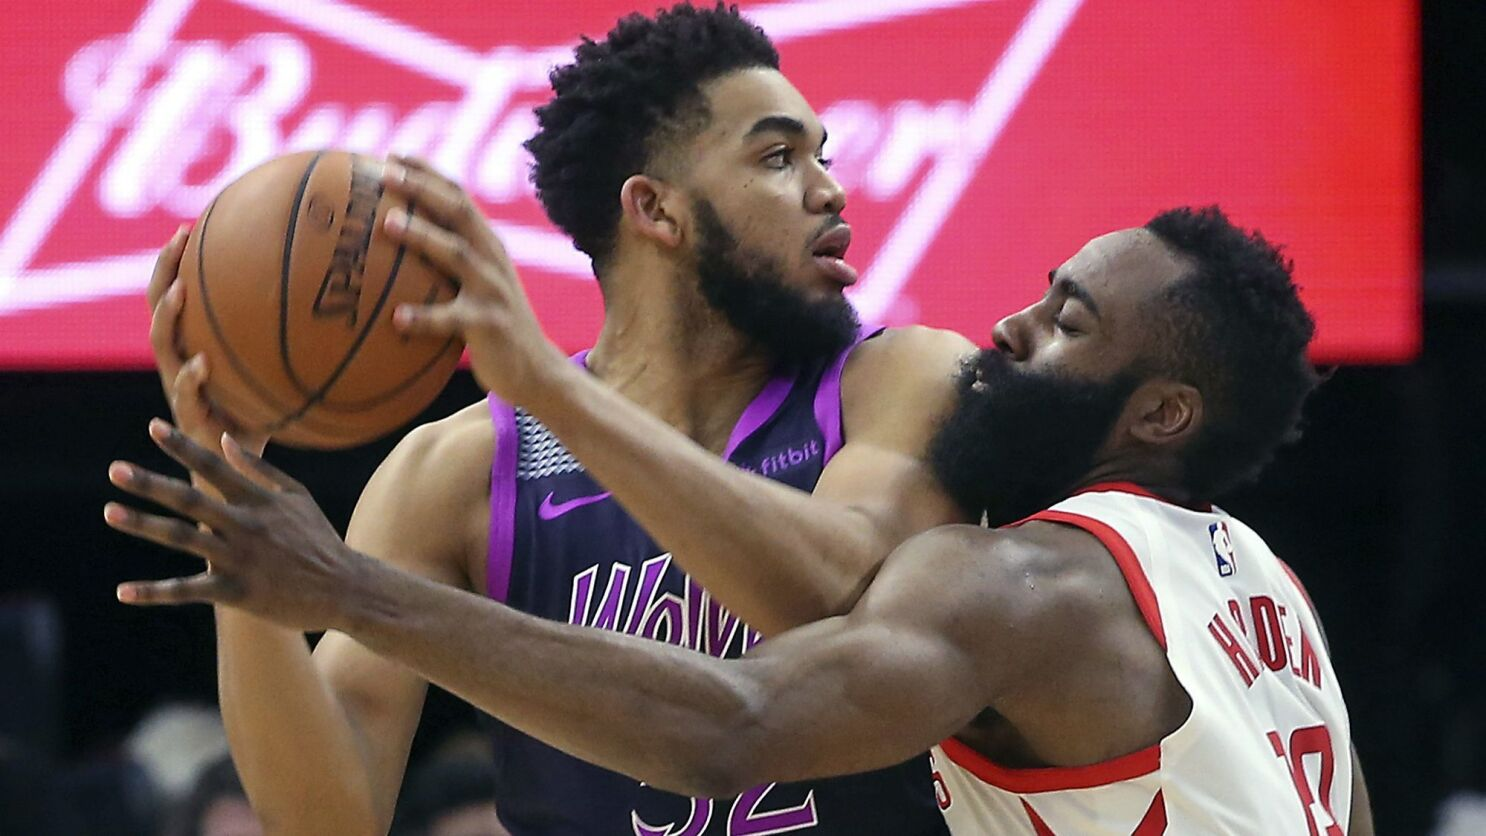 NBA notes: Karl-Anthony Towns misses first game in his career - Los Angeles Times